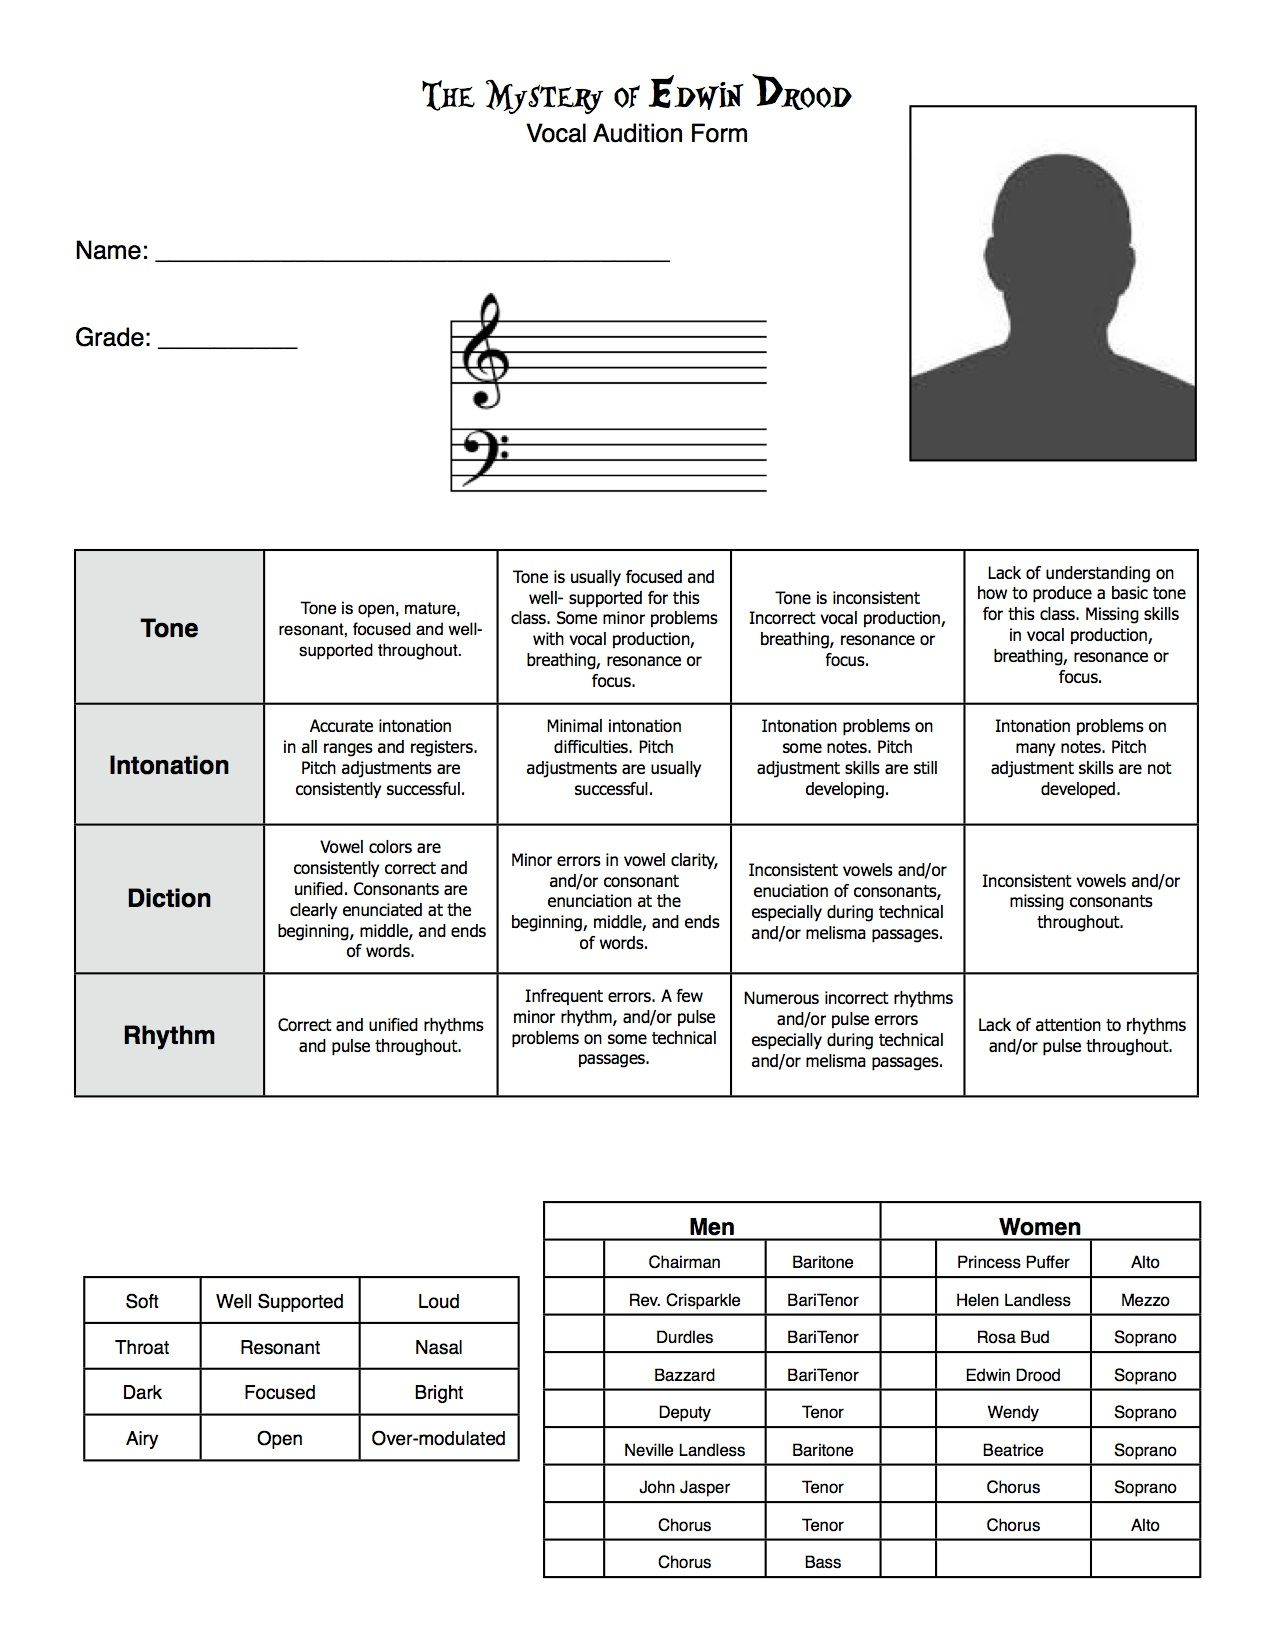 mystery-of-edwin-drood-audition-form.jpg (1275×1650